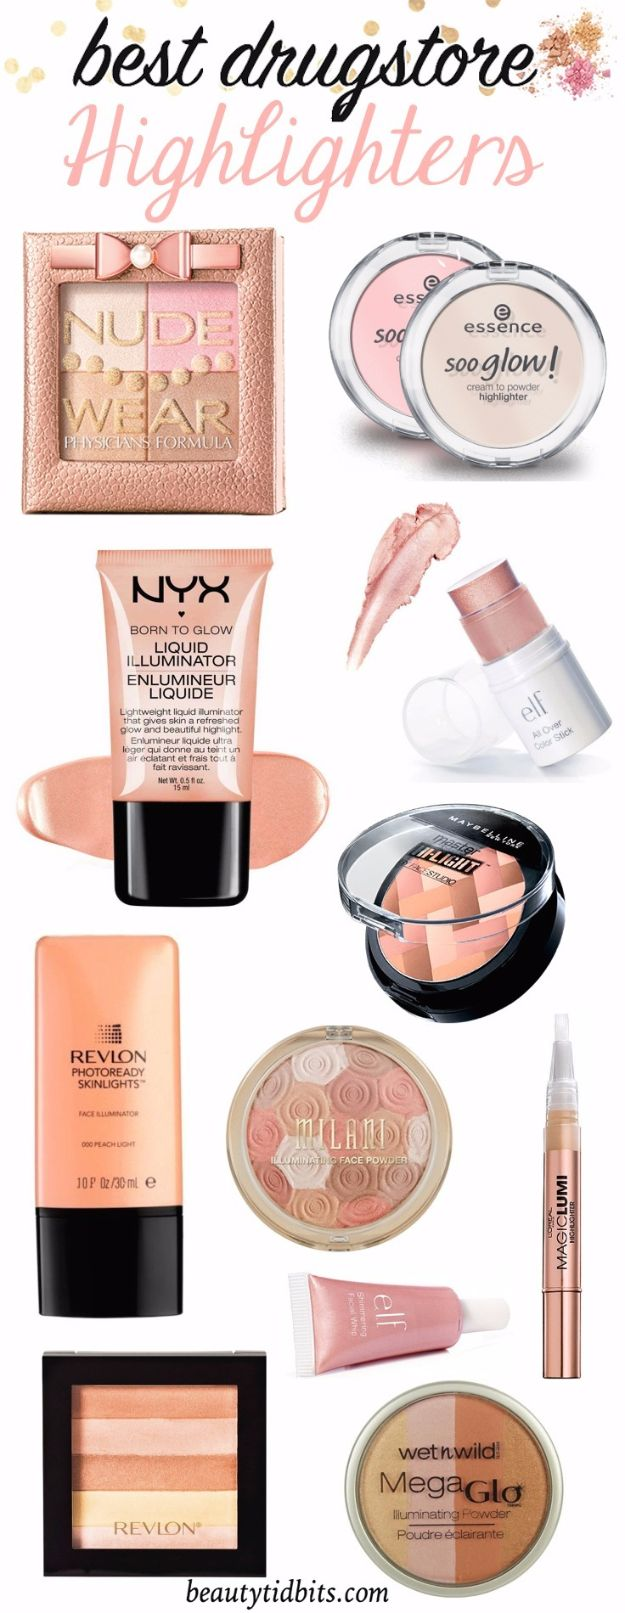 Best Drugstore Makeup Dupes- Best Drugstore Highlighters - Simple DIY Tutorials That Cover The Best Drugstore Dupes And Products For Foundation, Contouring, Lipsticks, Eye Concealer, Products For Oily Skin, Dupe Brushes, and Primers From 2016 And Places Like Target. These Are Cheap And Affordable - http://thegoddess.com/best-drugstore-makeup-dupes